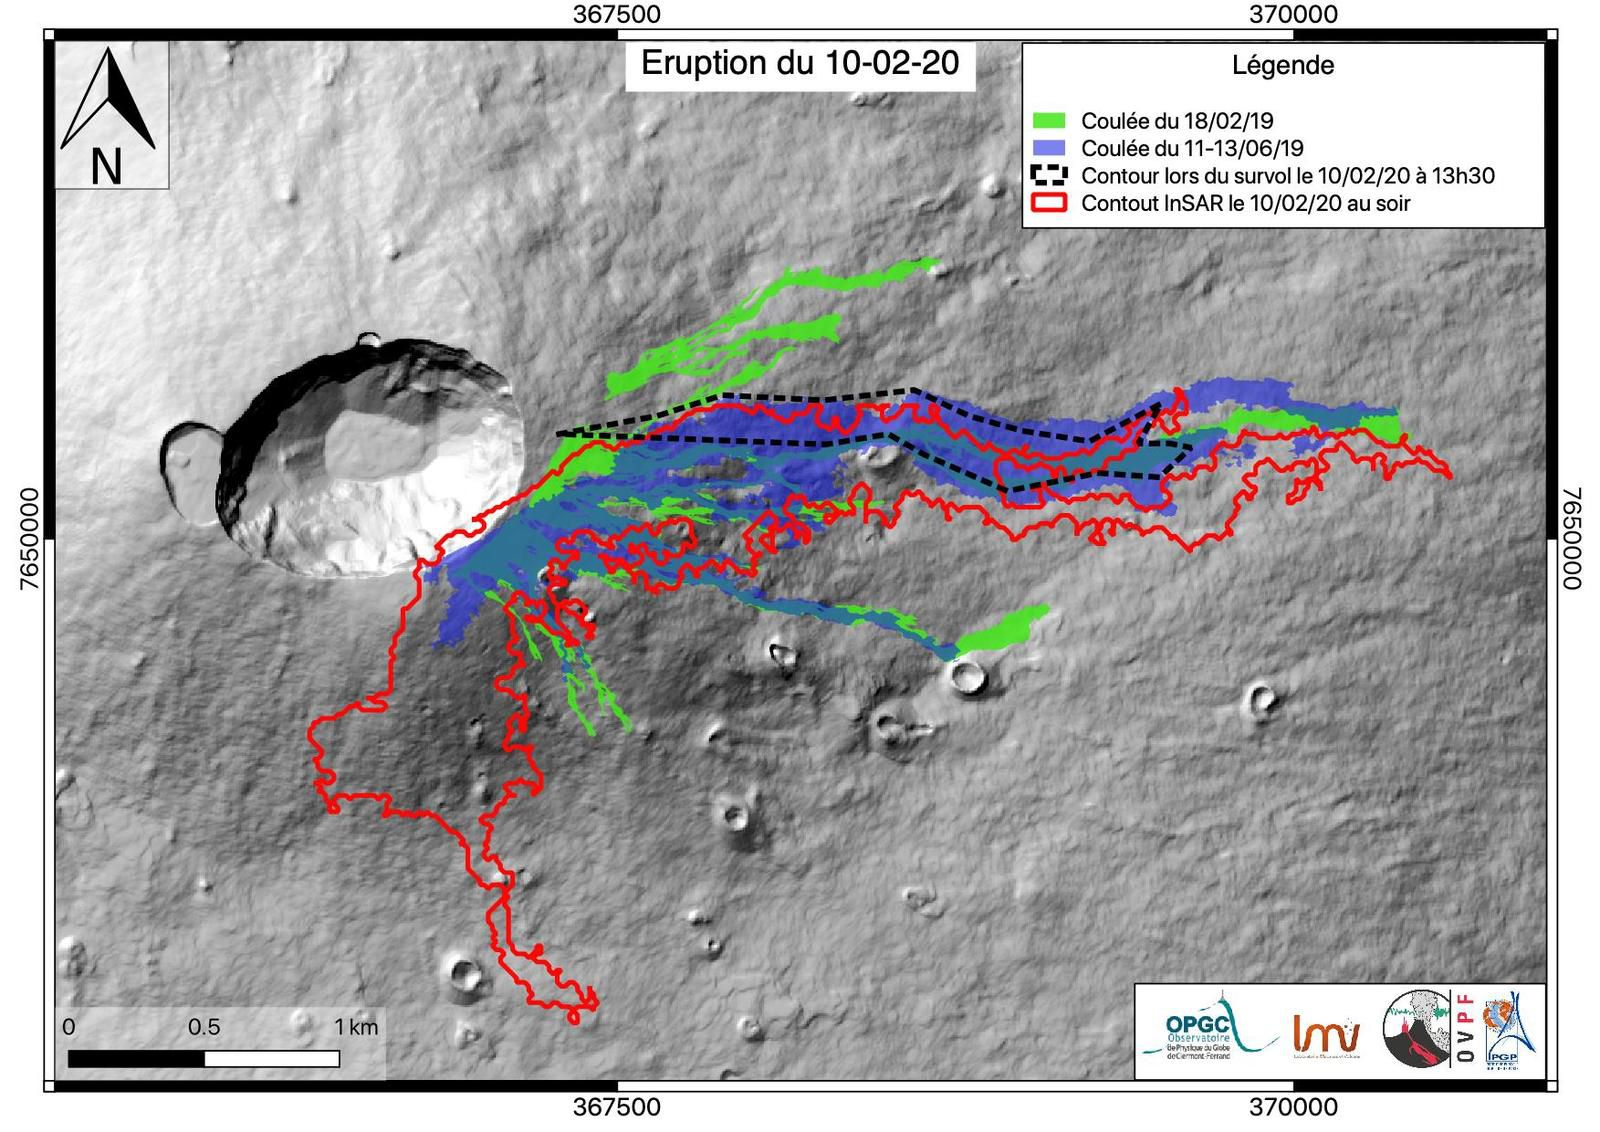 Piton de La Fournaise - last mapping of the eruption flows of 10.02.2020 -Doc. © OPGC / LMV / OVPF / IPGP